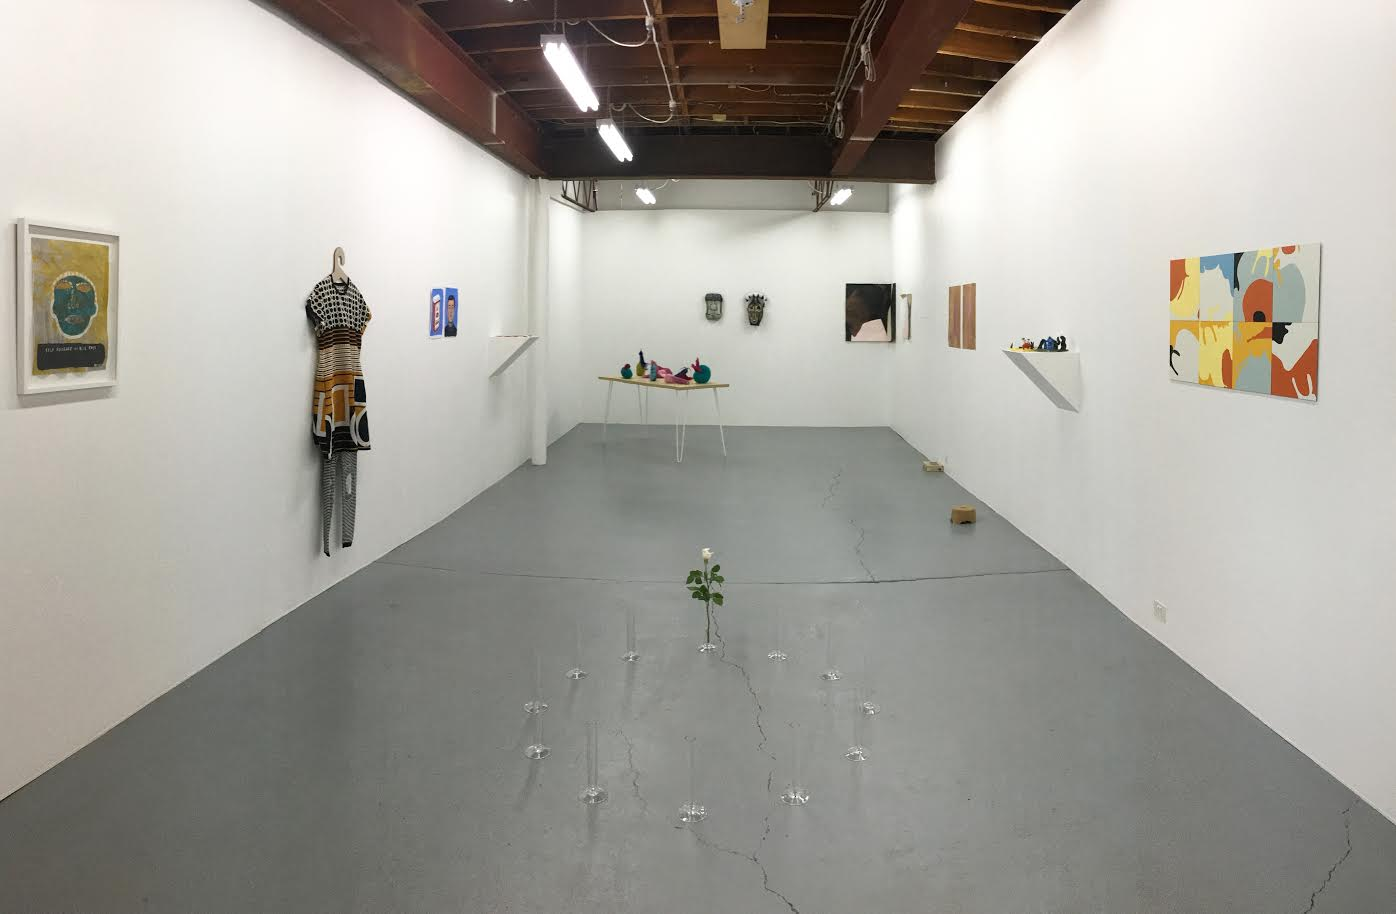 Committee., 2018. Installation view in Gallery One. Image: Uri Auerbach